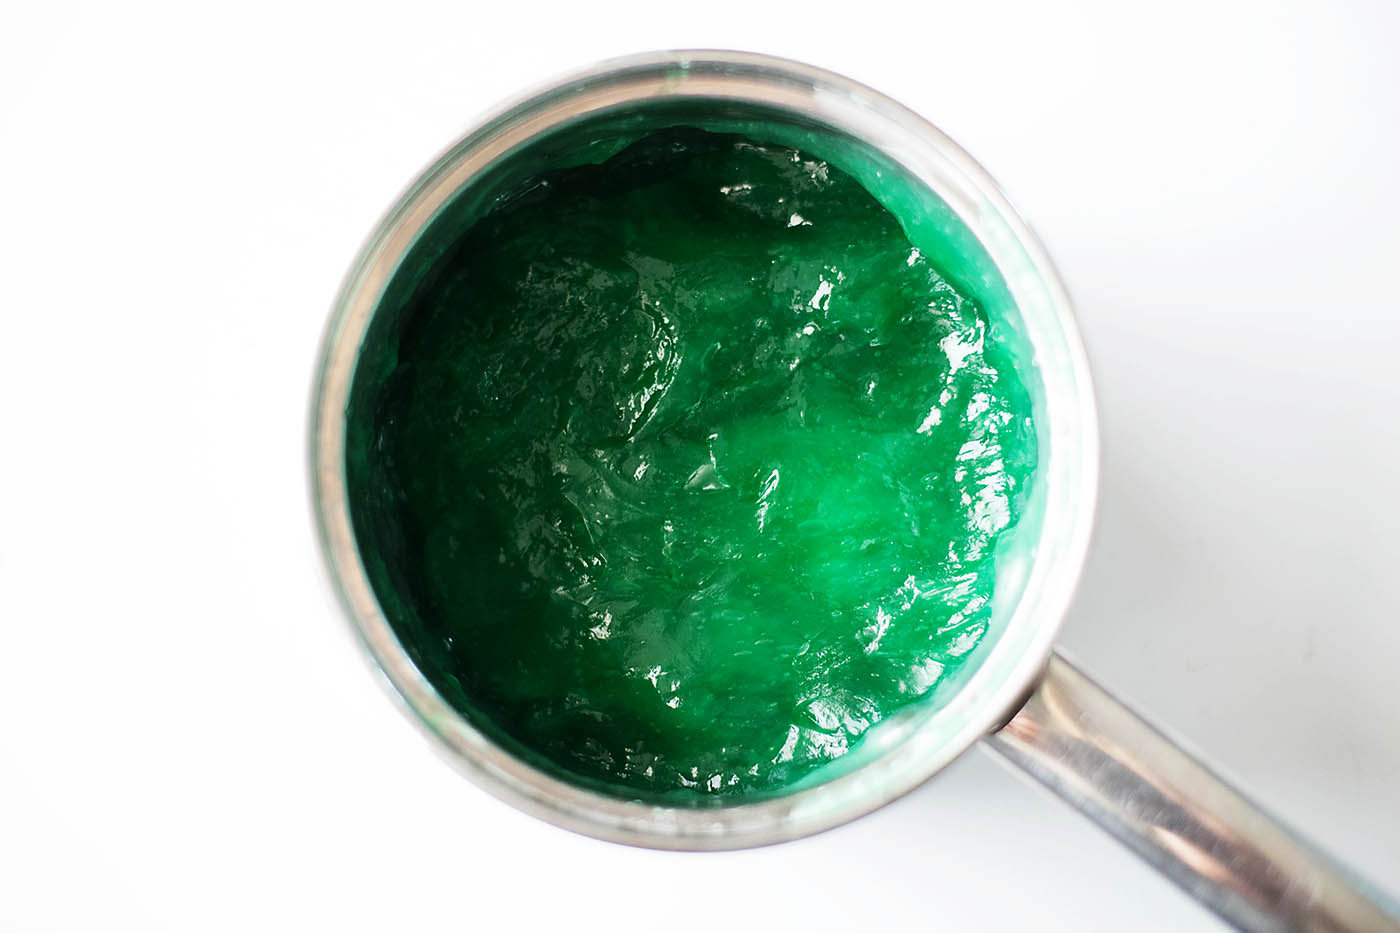 An easy and safe slime recipe using only 3 food safe ingredients. Nice and slimy, sticky and stretchy!